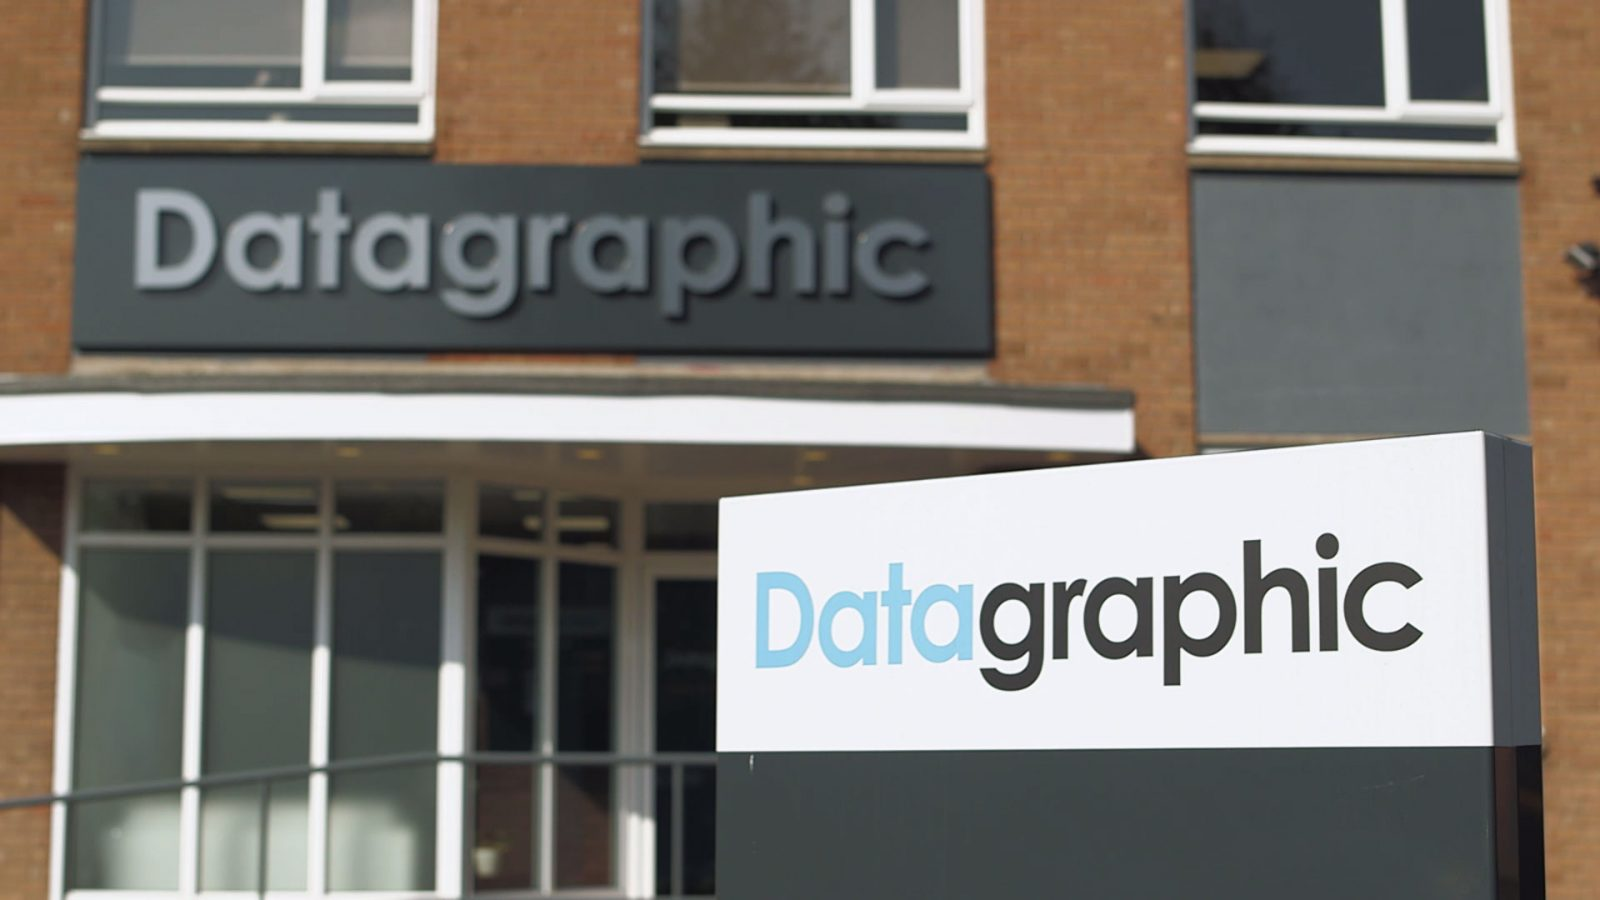 Datagraphic Rugby